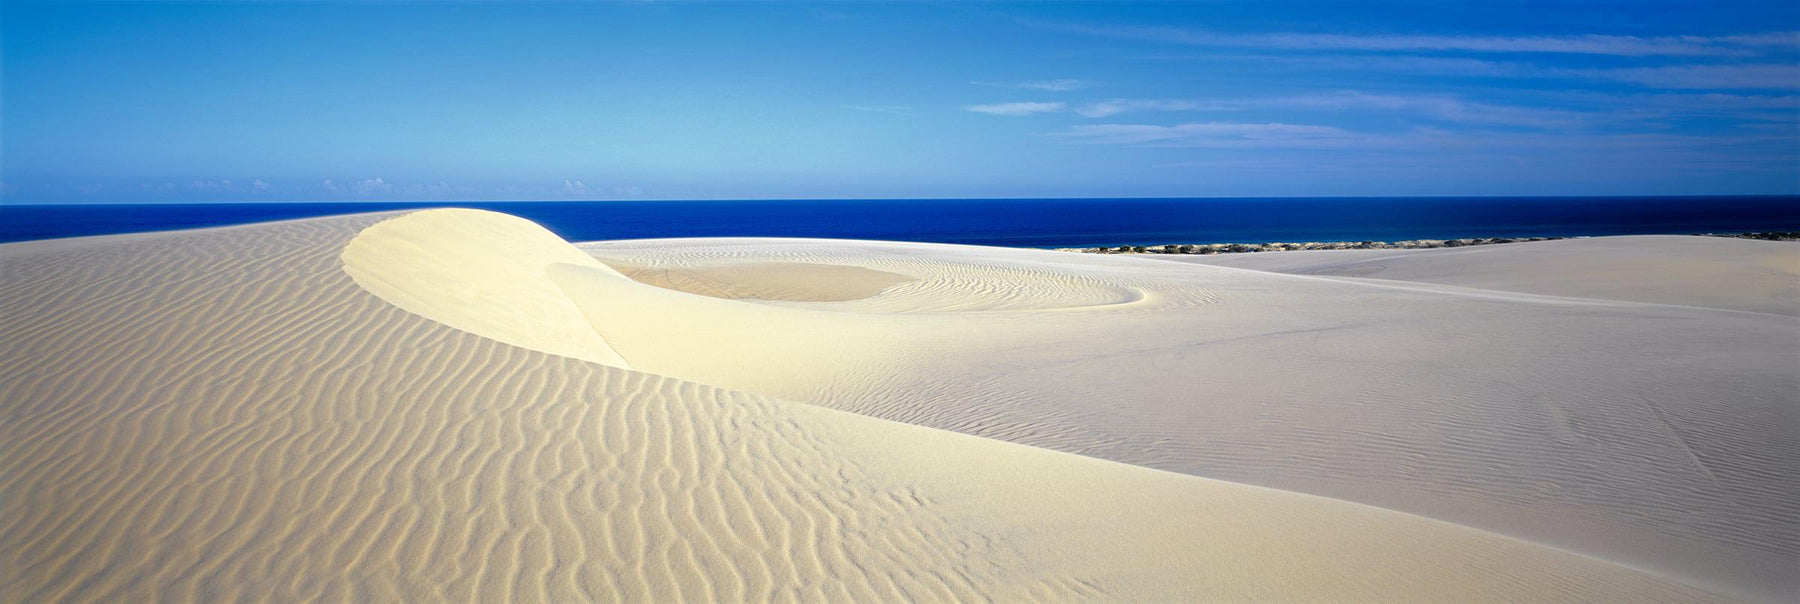 Beige sand dunes along the coast of Fraser Island National Park Australia